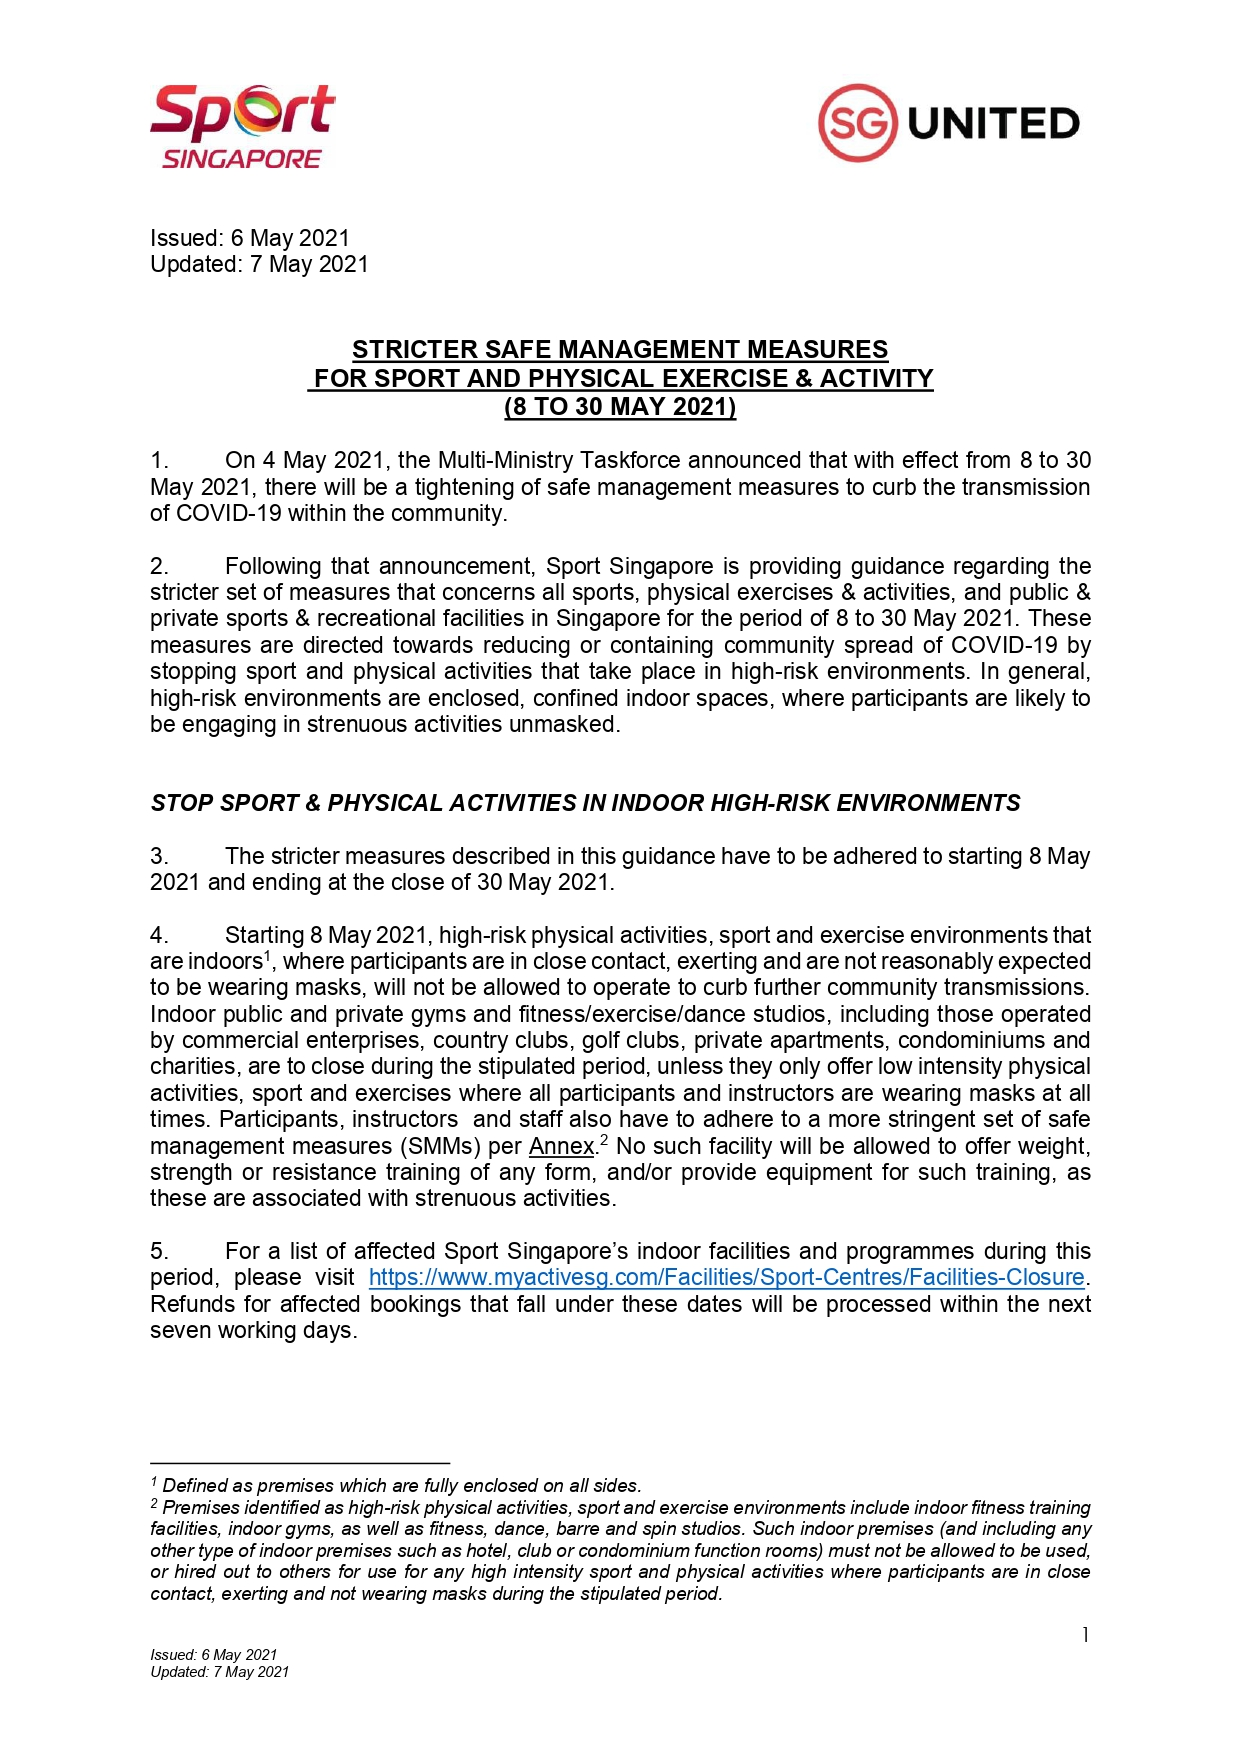 (Updated As Of 7 May 2021) Stricter Safe Management Measures For Sport And Physical Exercise and Activity (8 to 30 May)_pages-to-jpg-0001